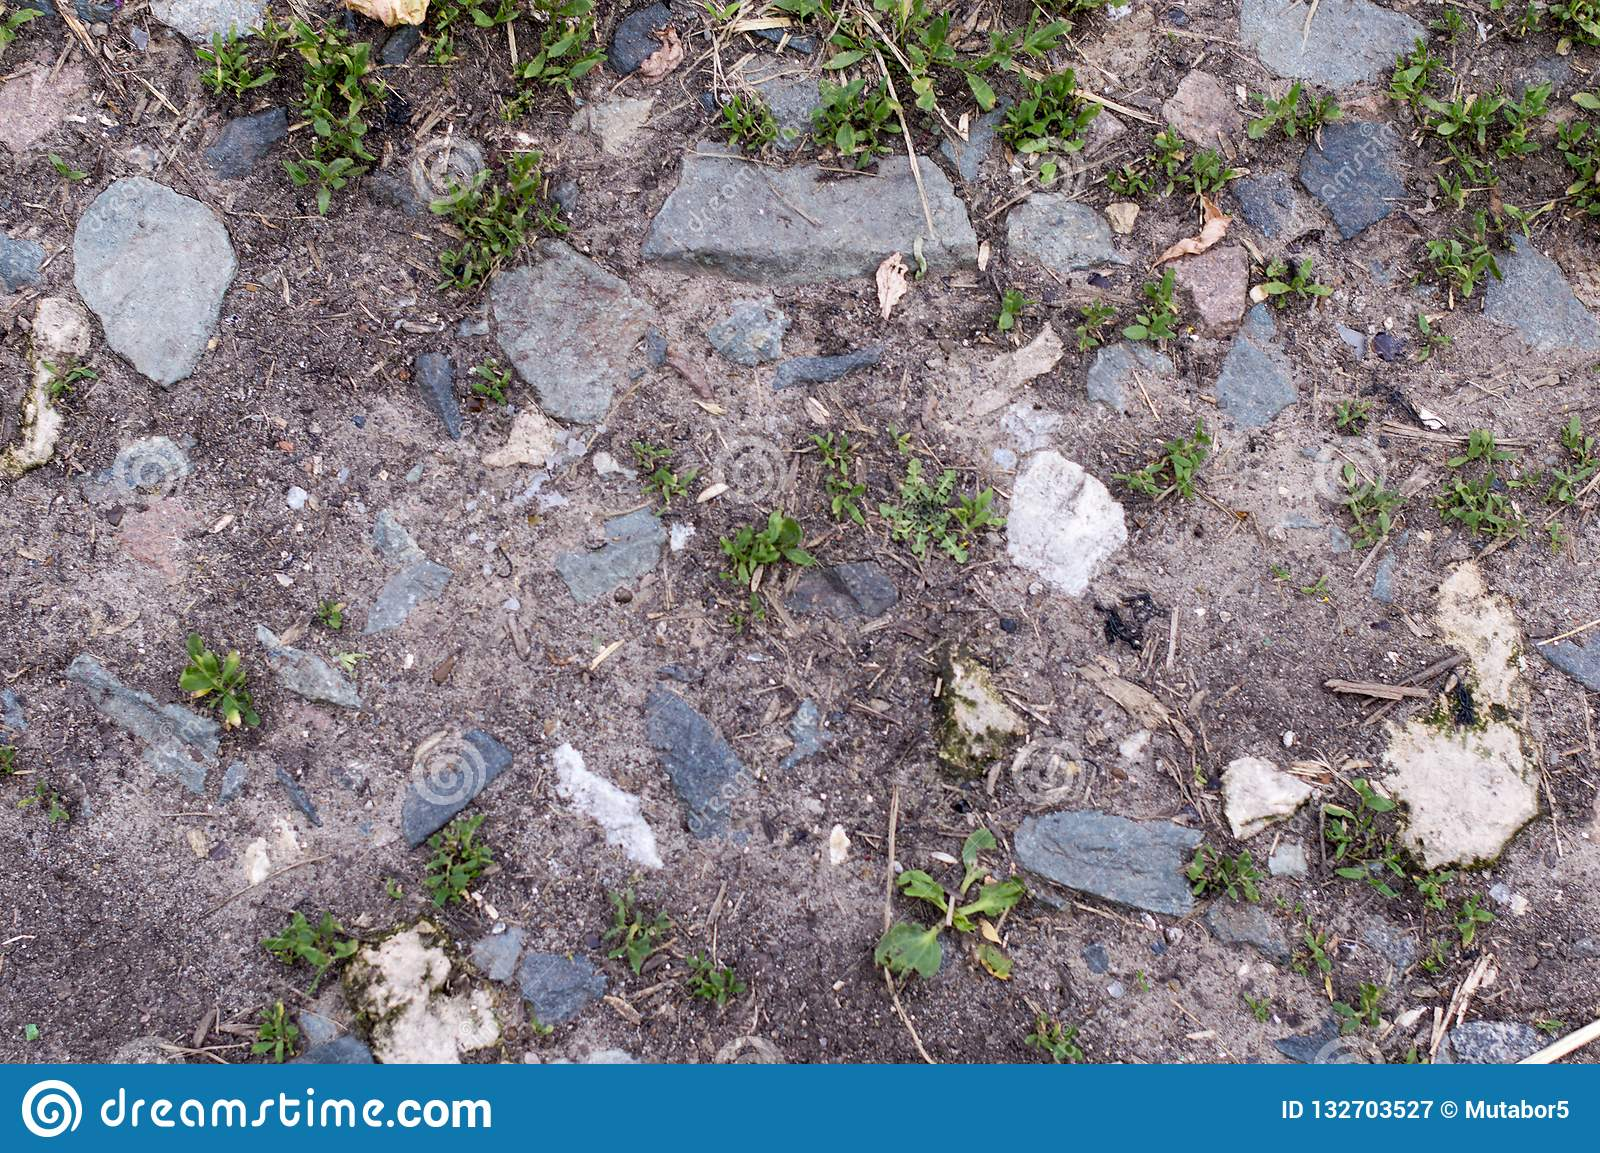 The soil in the flower bed for growing flowers and plants. Land.